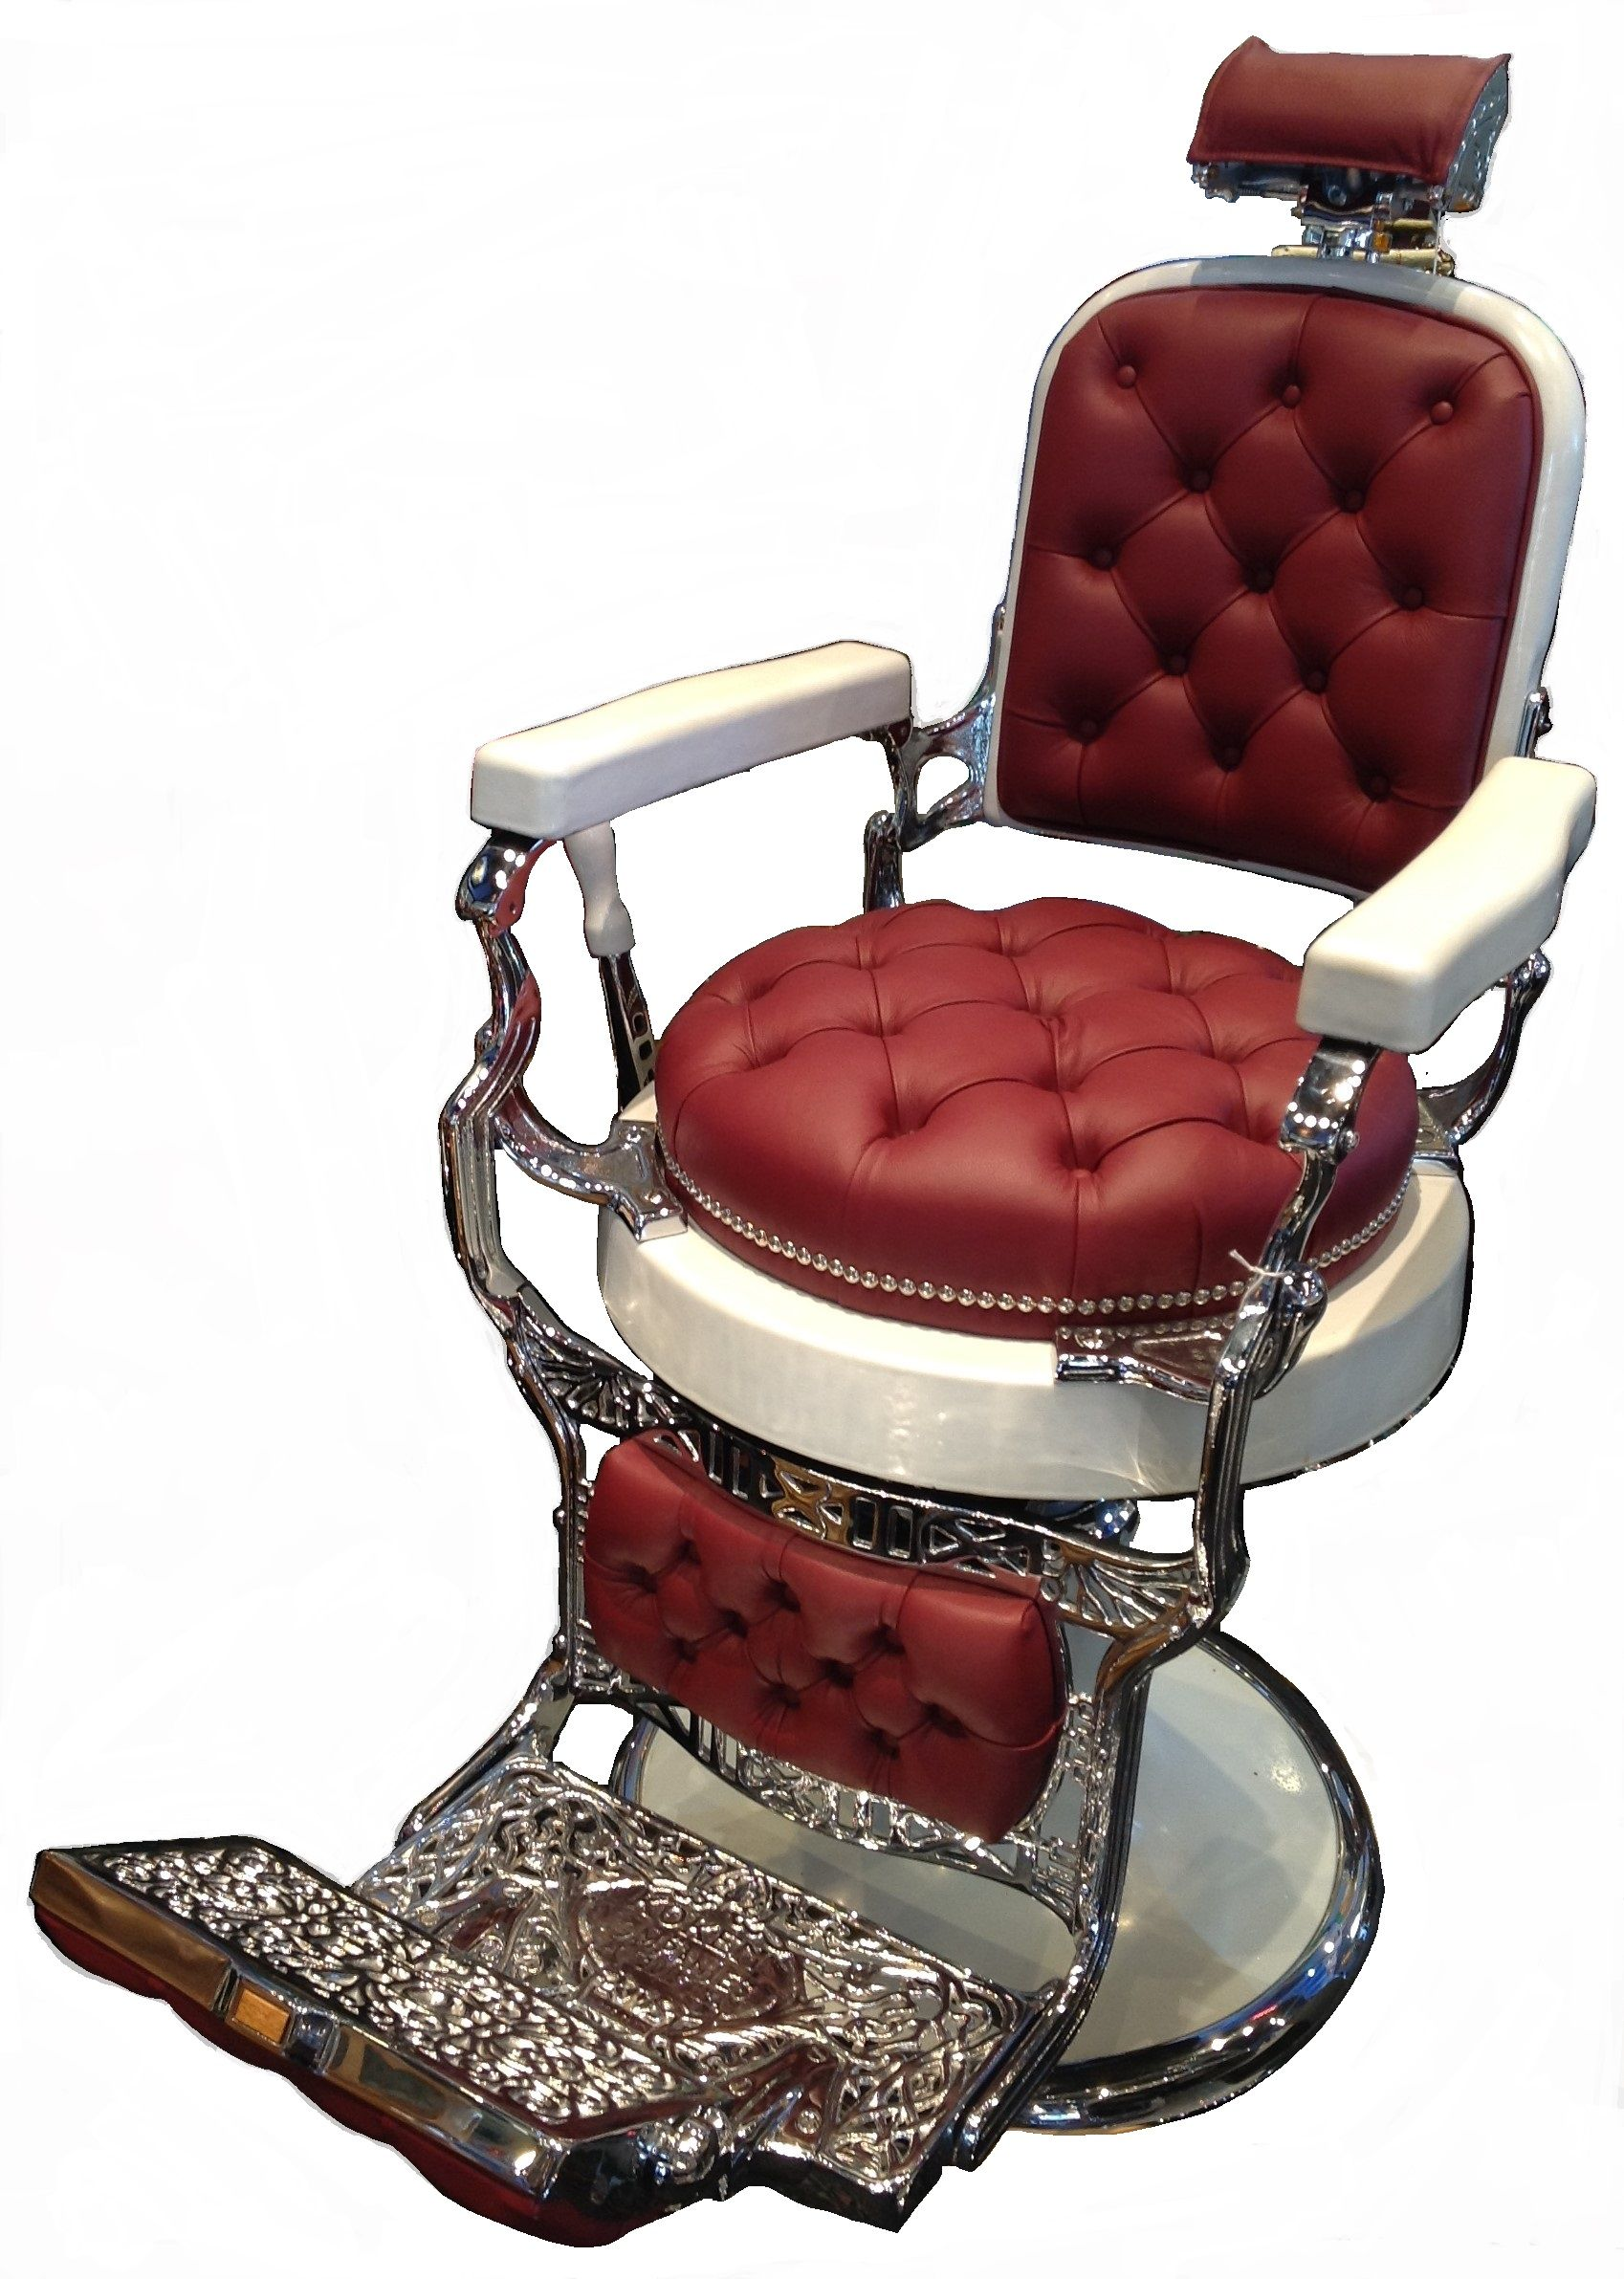 Tremendous 1930S Barber Chair Fully Restored With Red Leather Cushion Machost Co Dining Chair Design Ideas Machostcouk